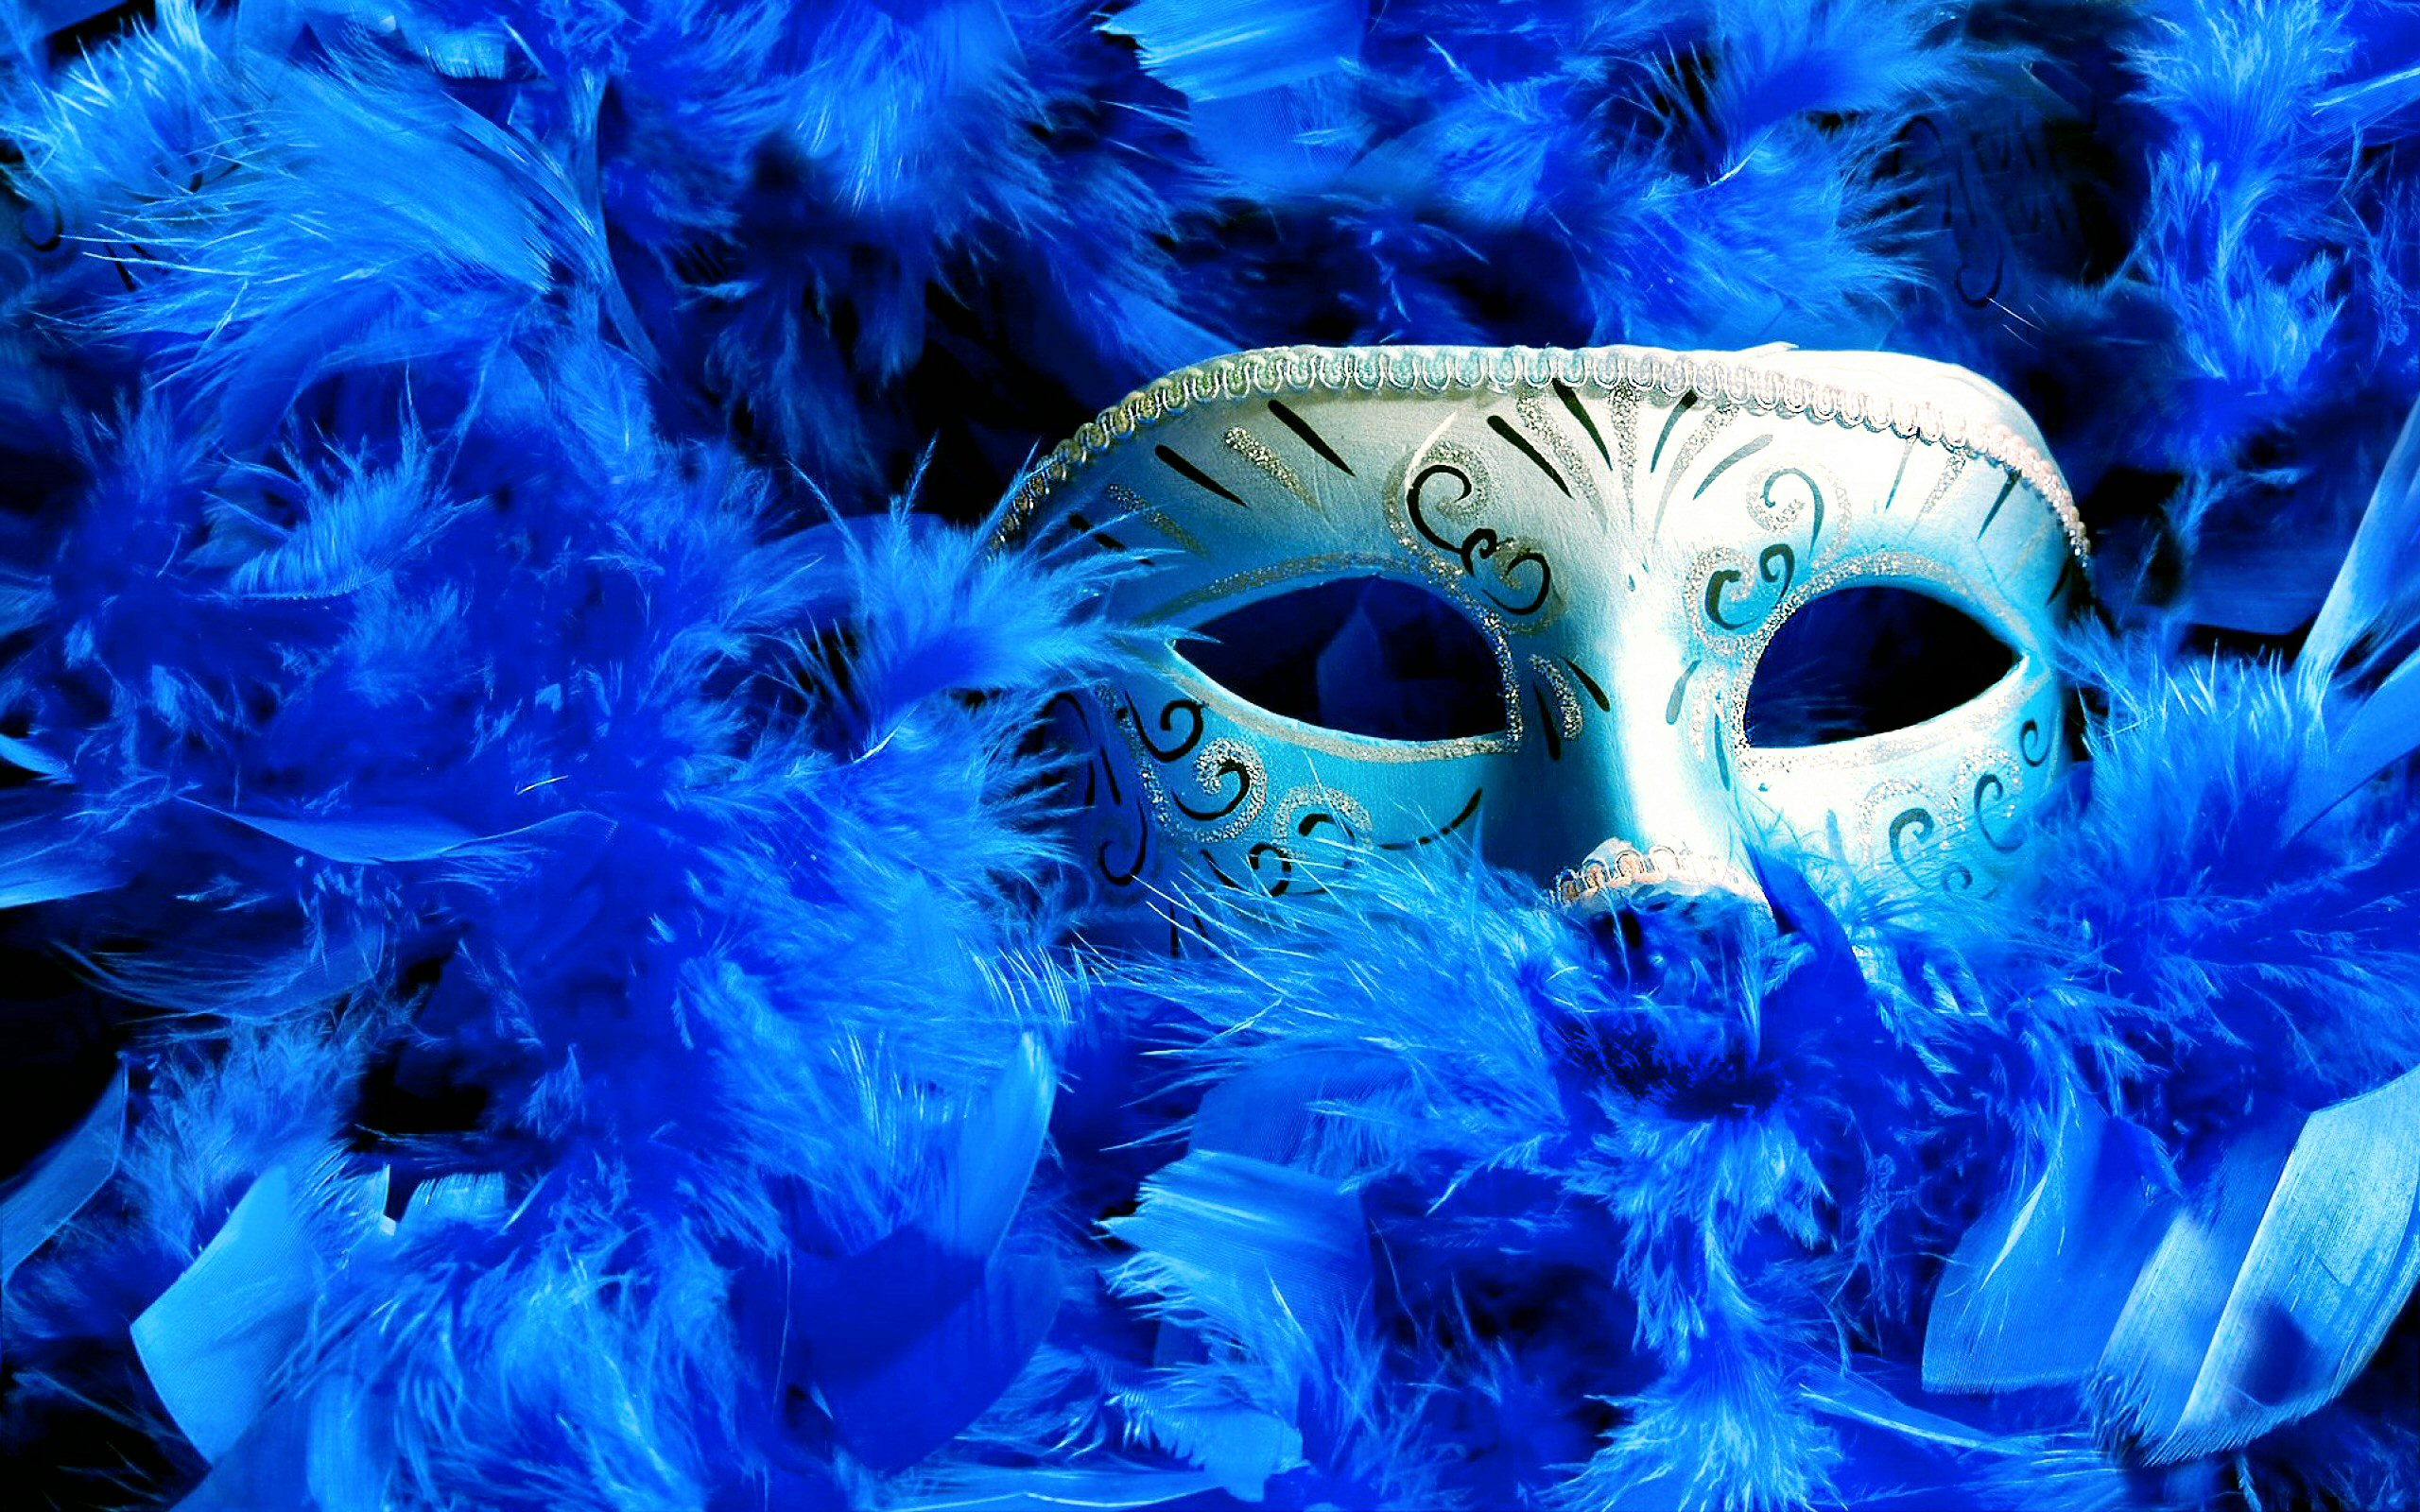 New Masquerade Mask High Defination Wallpapers   All HD 2560x1600